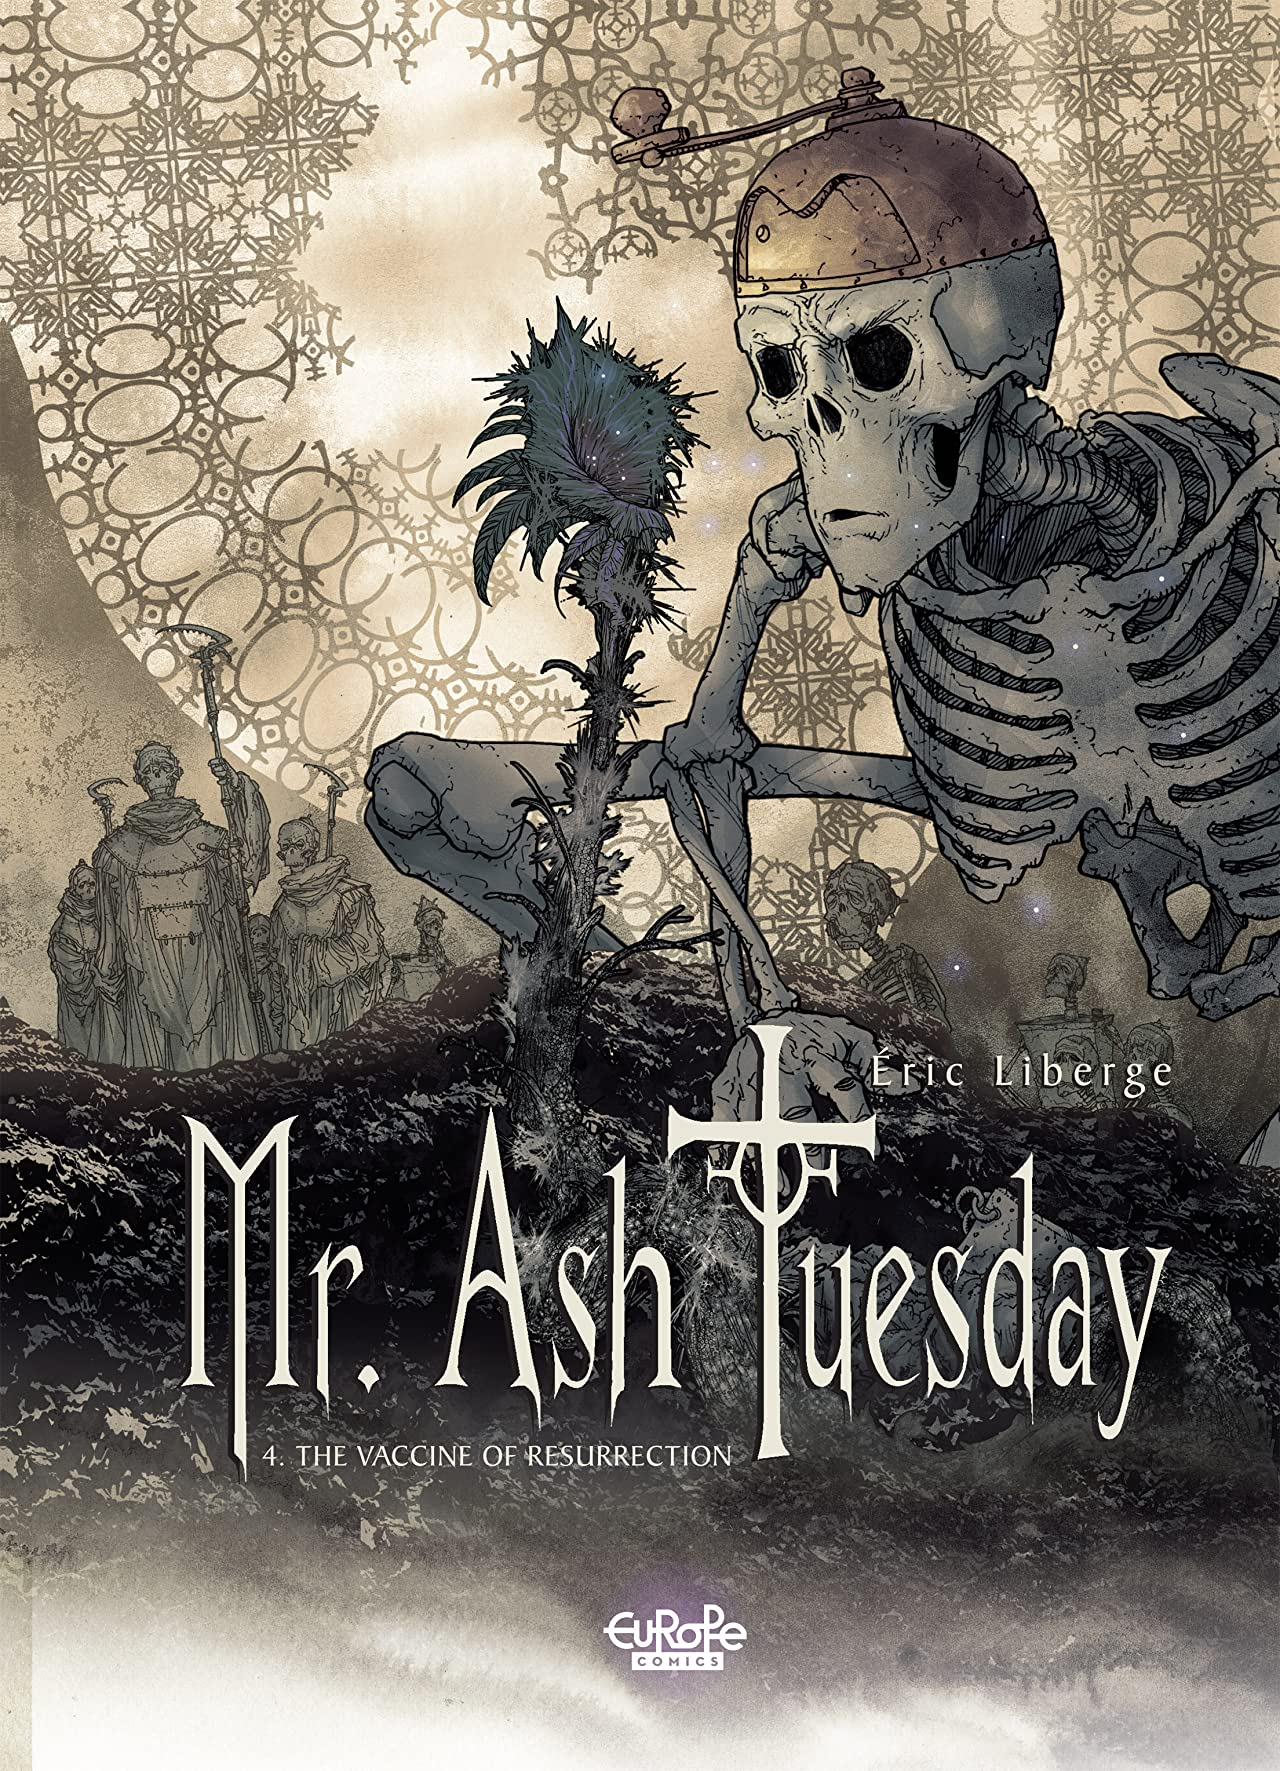 Mr. Ash Tuesday Vol. 4: The Vaccine of Resurrection